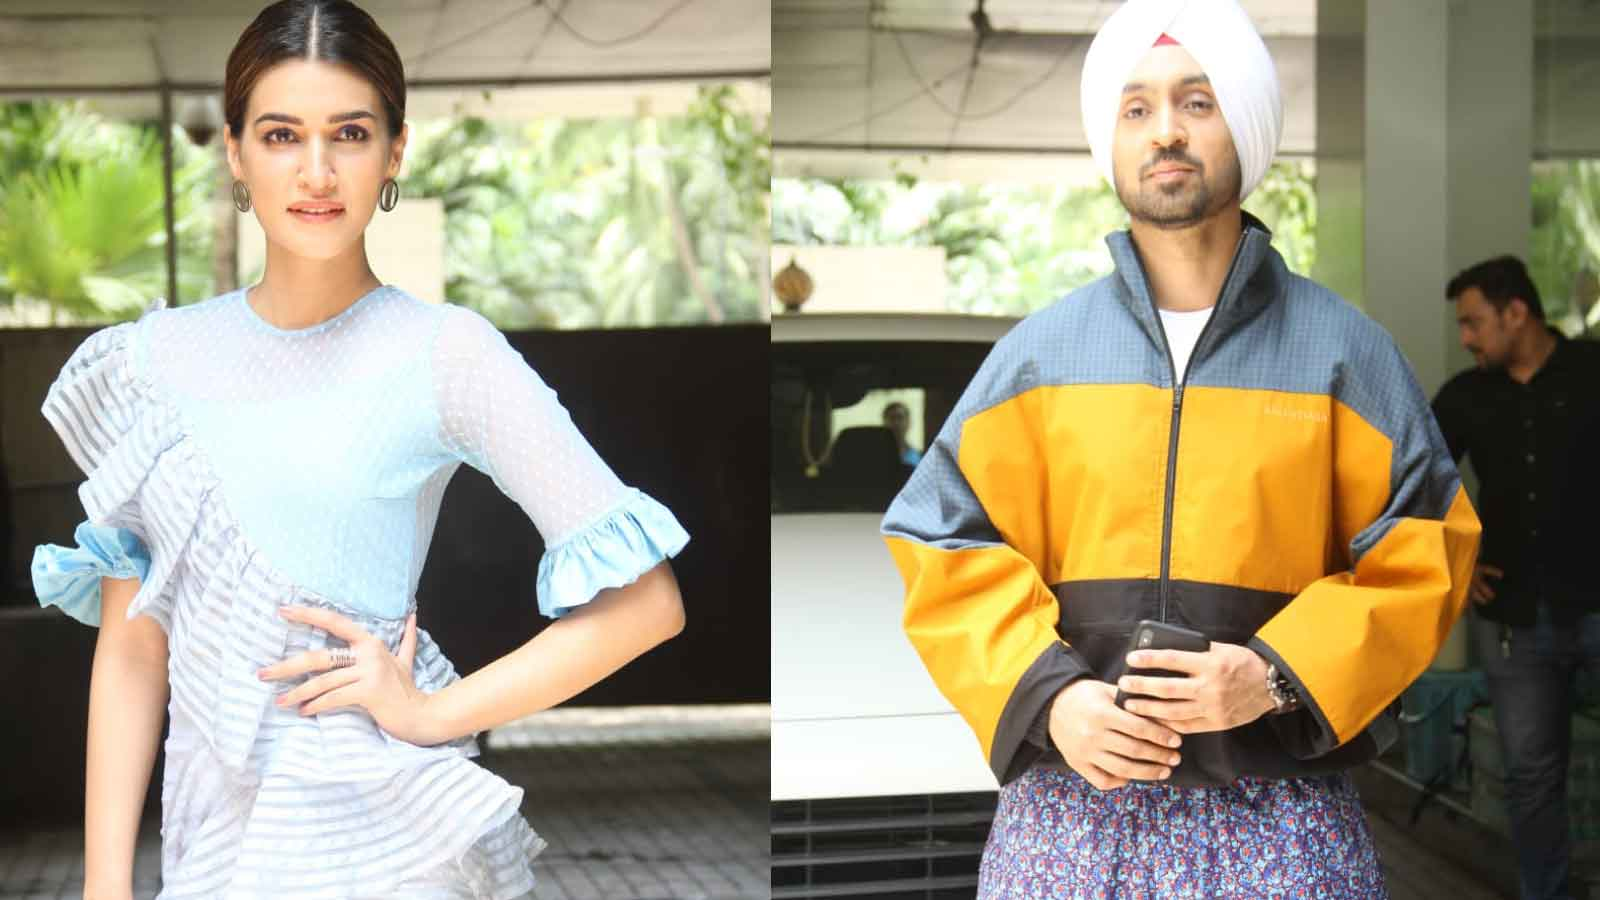 kriti-sanon-diljit-dosanjh-promote-upcoming-film-arjun-patiala